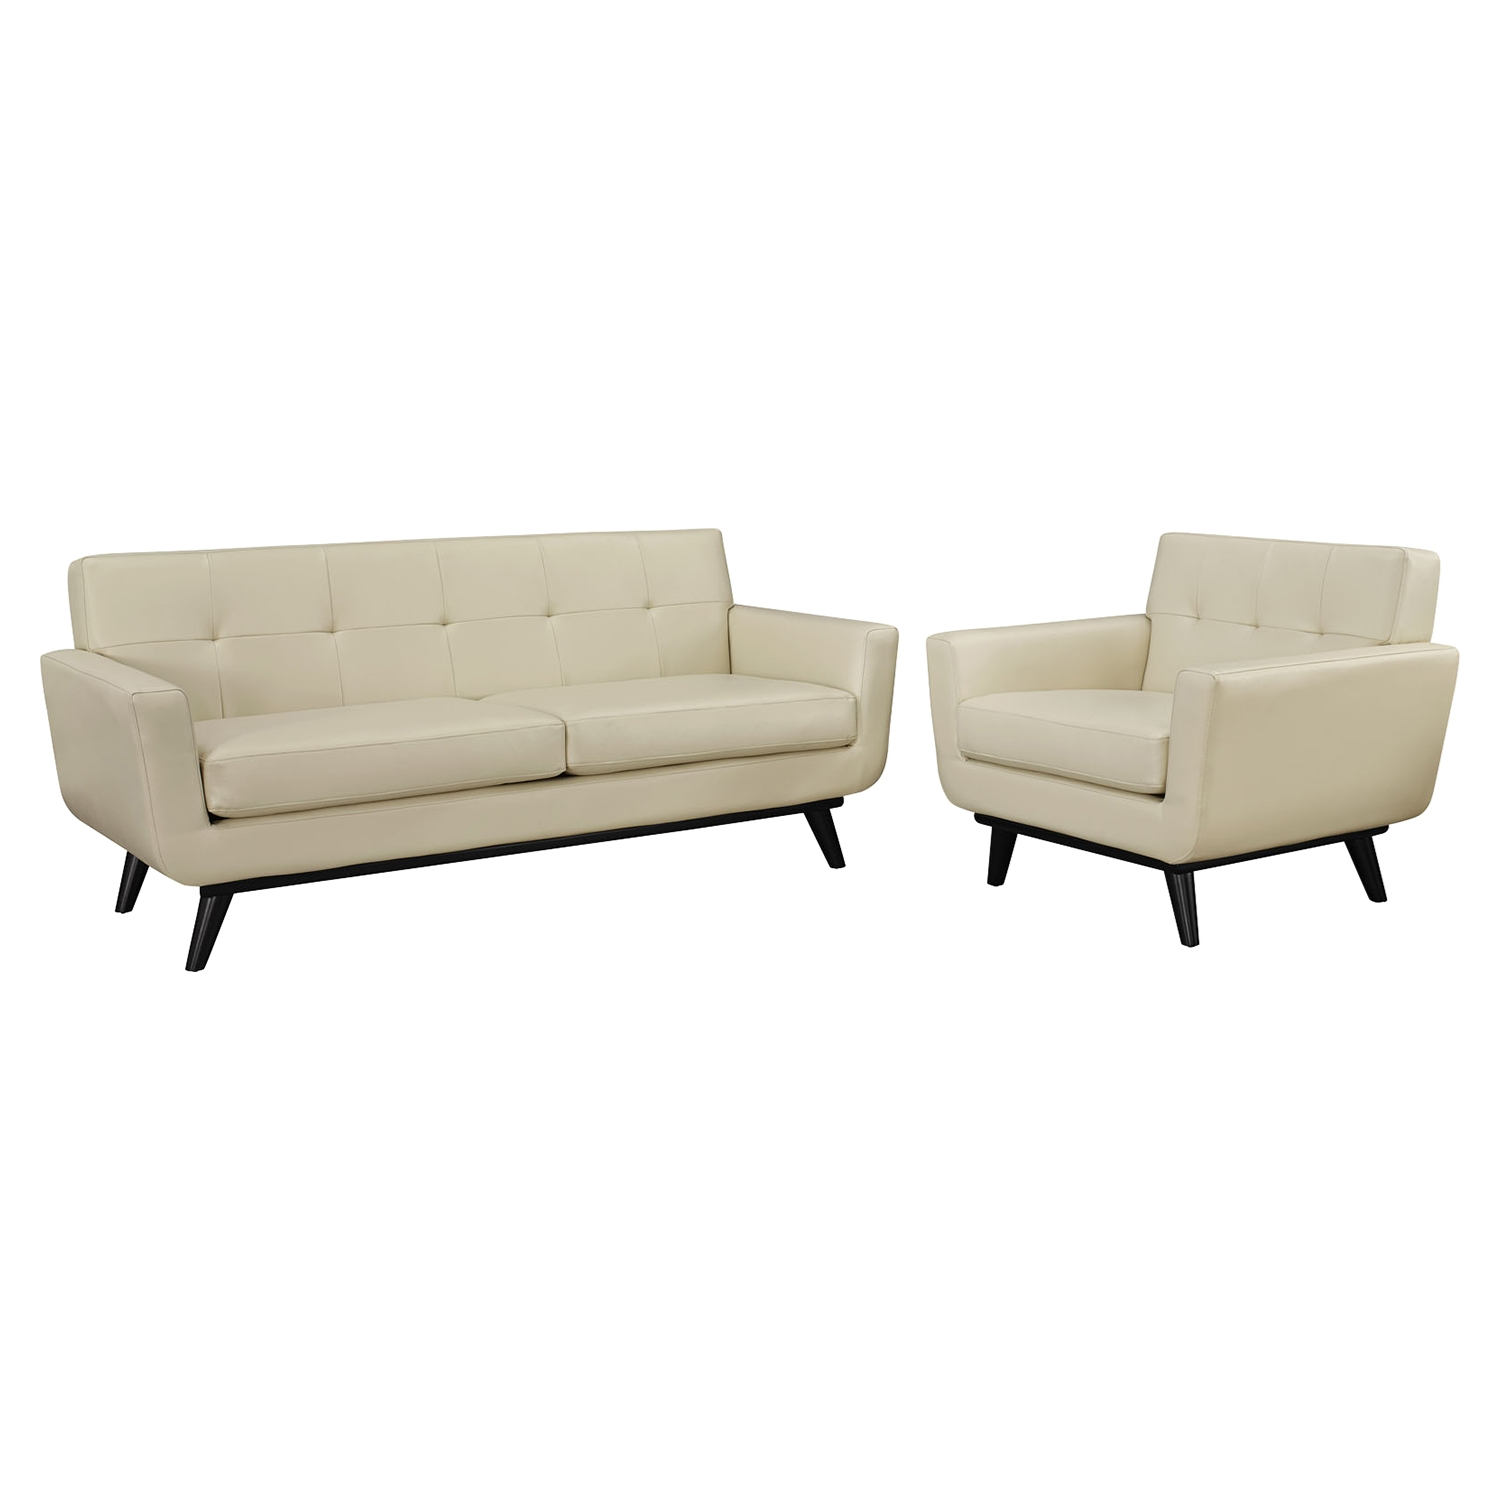 Engage 2 Pieces Leather Sofa Set - Tufted, Beige - EEI-1765-BEI-SET